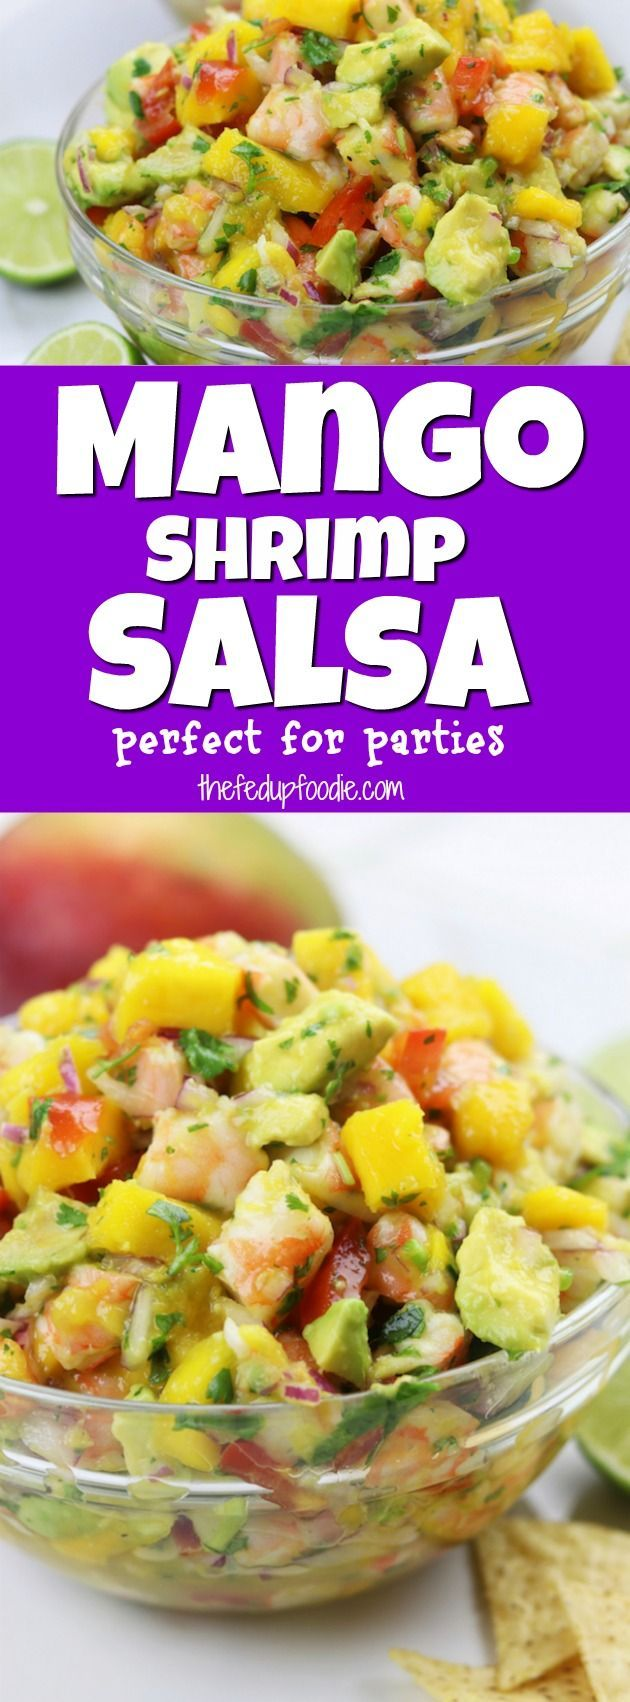 Refreshing and satisfying, Mango Shrimp Salsa recipe is a fruity seafood feast that is perfect for parties. One of my favorite splurges that comes together in under 30 minutes. Instructional video included showing the simple steps.#thefedupfoodie#partyrecipe#partydip#salsa#seafooddip#mexicanappetizerhttps://www.thefedupfoodie.com